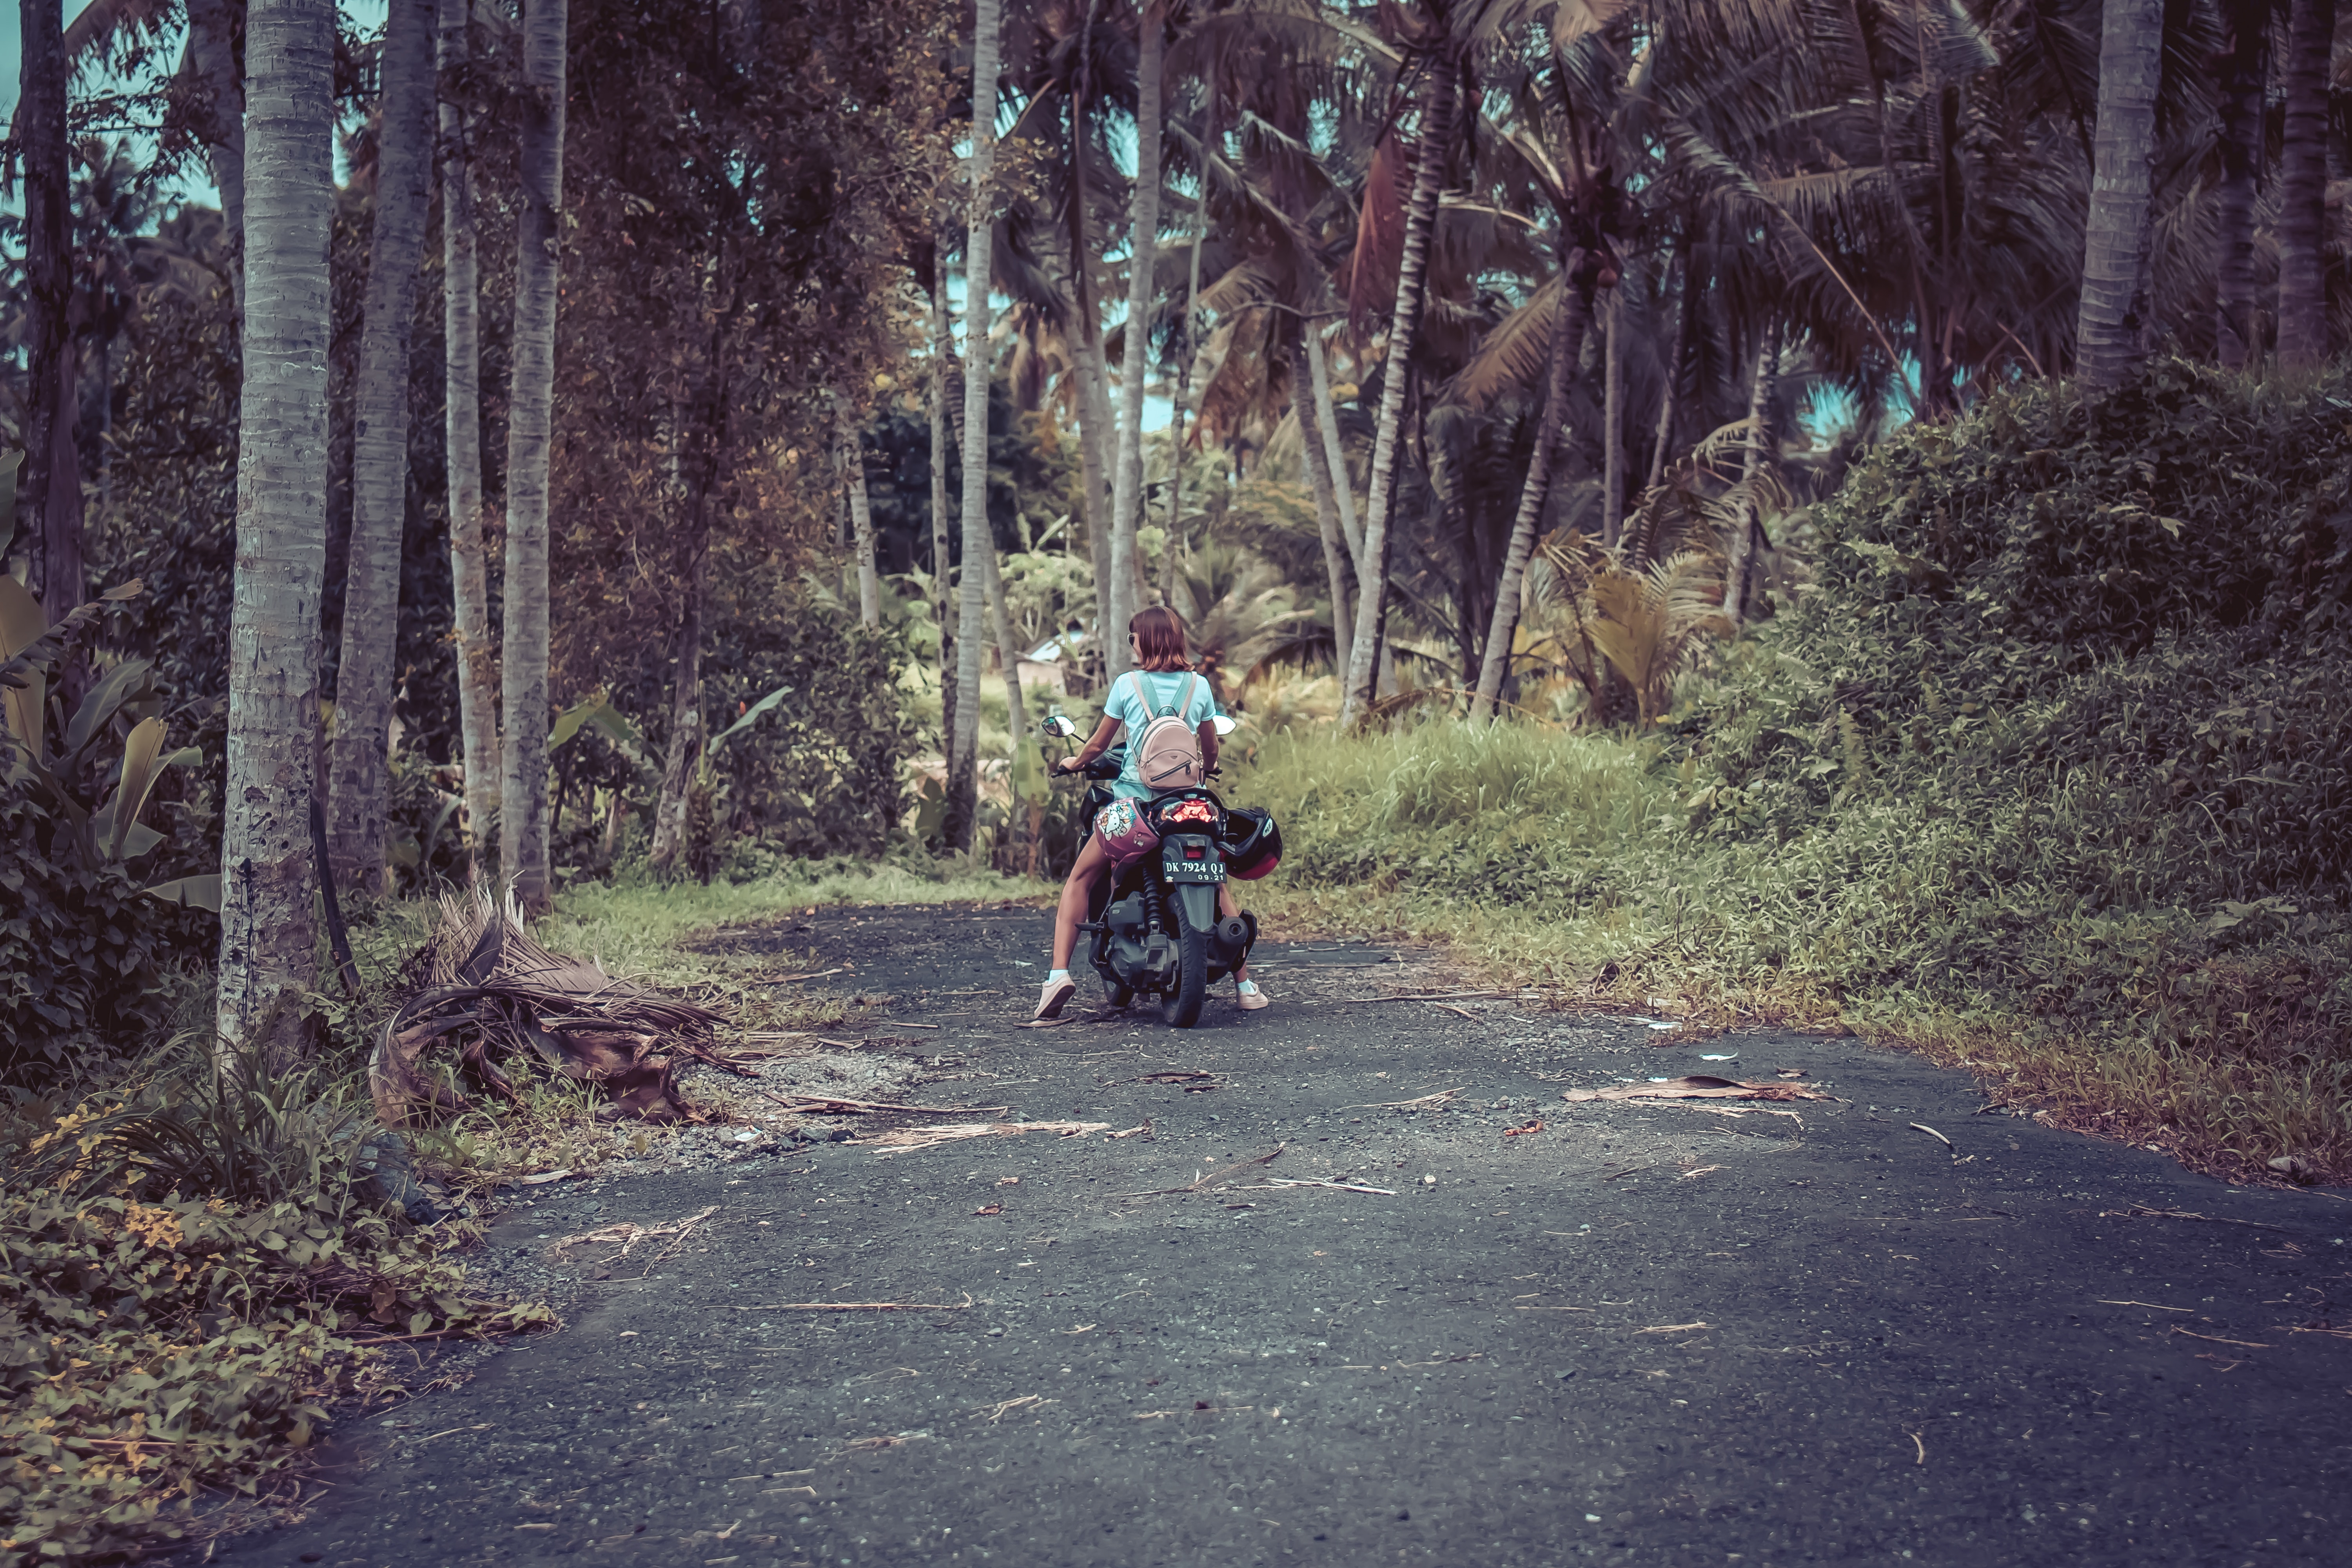 Woman Riding Motor Scooter Near Coconut Trees, Action, Trail, Road, Safety, HQ Photo